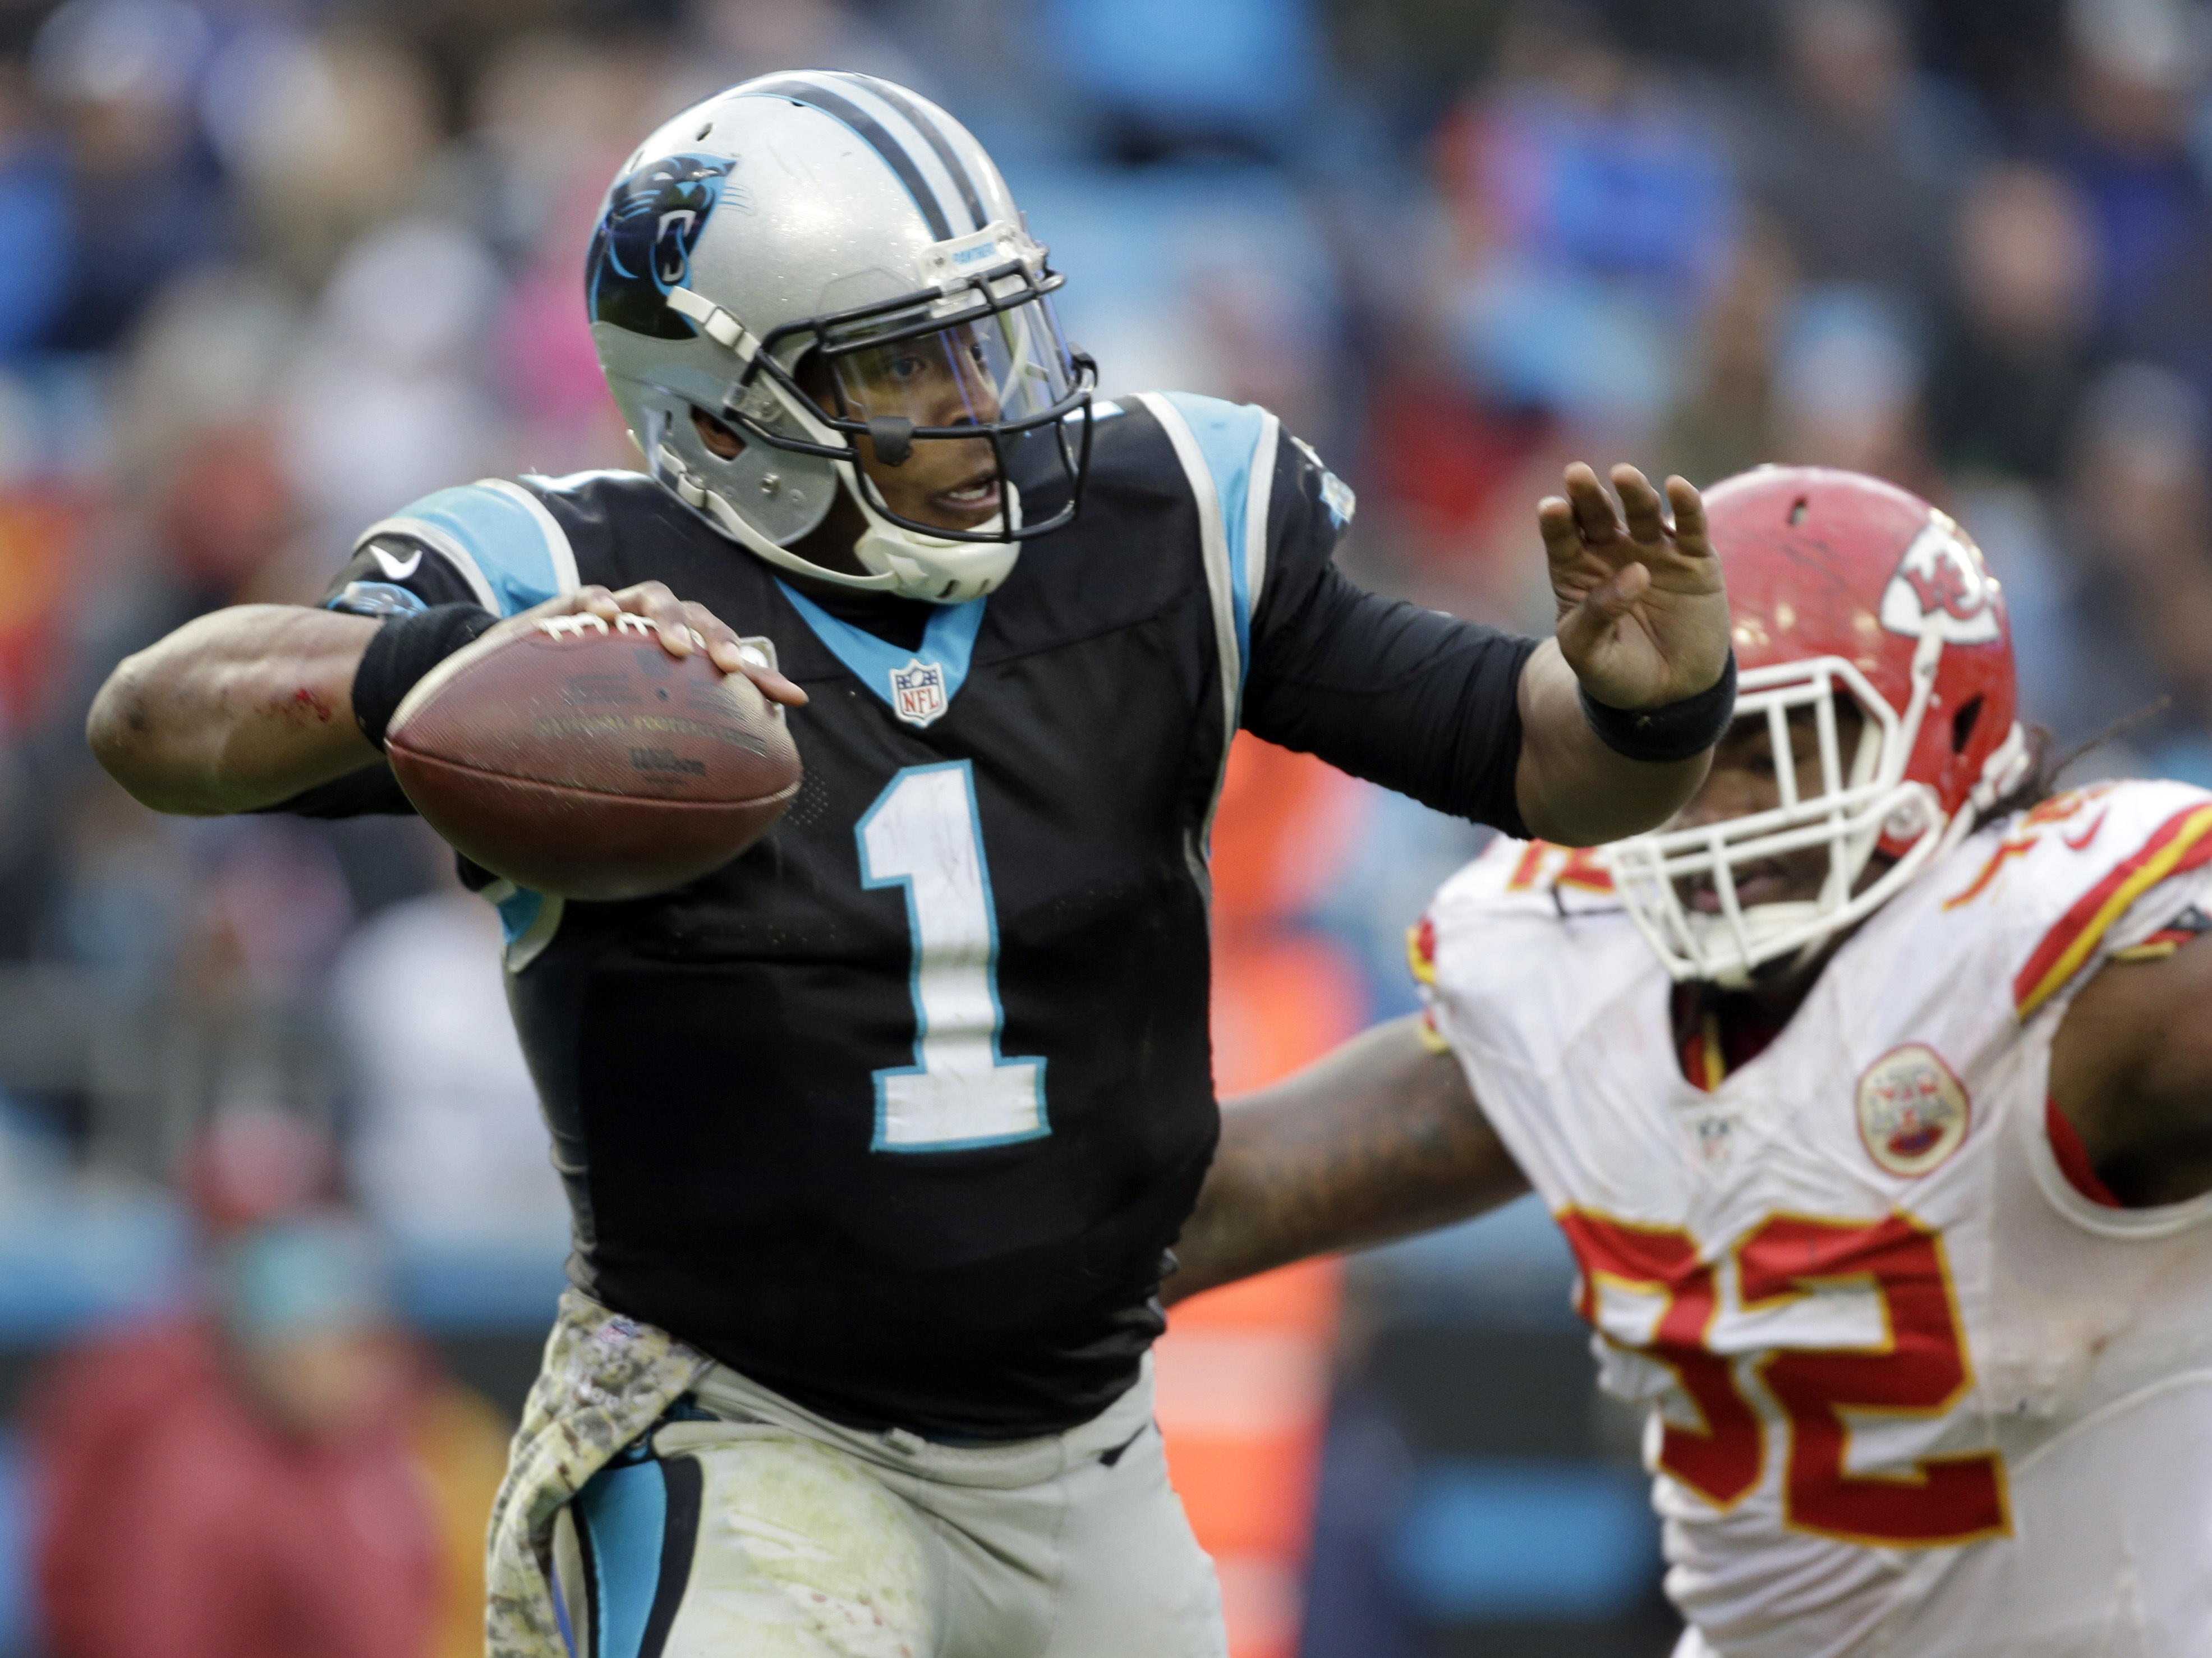 Carolina Panthers' Cam Newton (1) looks to pass under pressure from Kansas City Chiefs' Dontari Poe (92) in the second half of an NFL football game in Charlotte, N.C., Sunday, Nov. 13, 2016. (AP Photo/Bob Leverone)